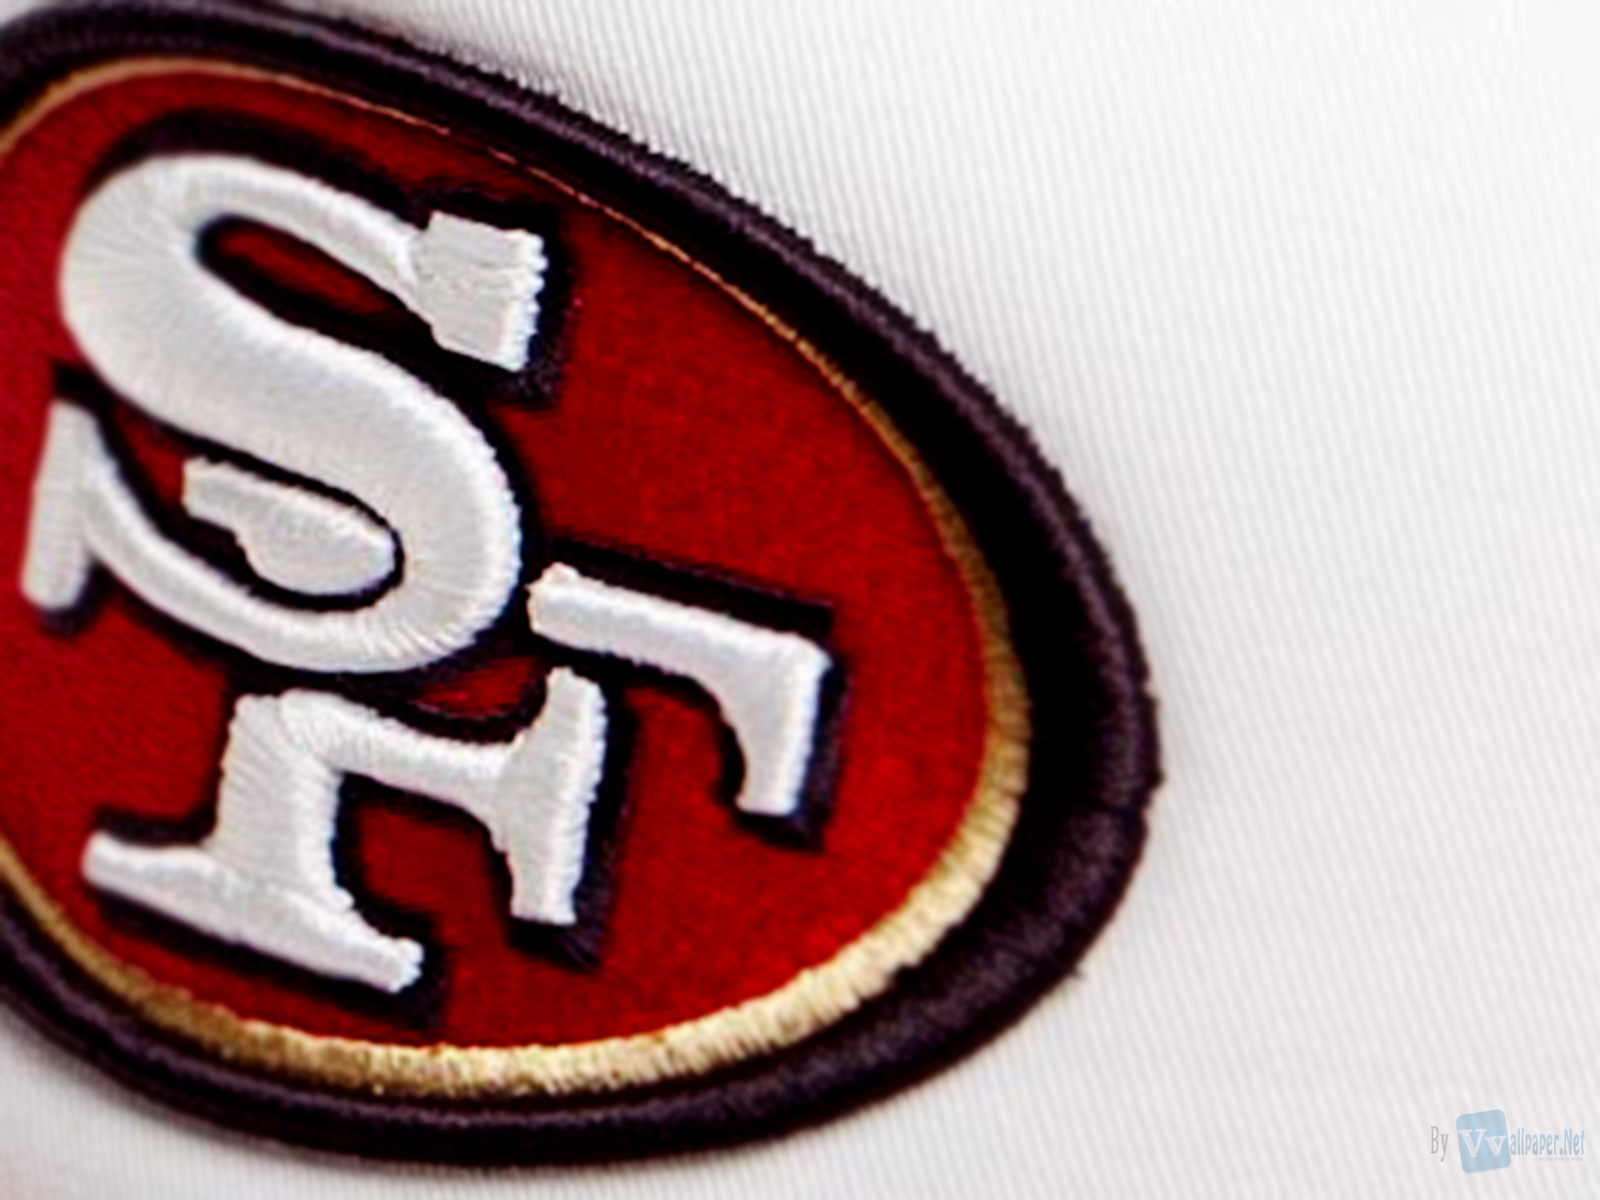 SF 49ers Nfl Team Logo Close Up HD Wallpaper